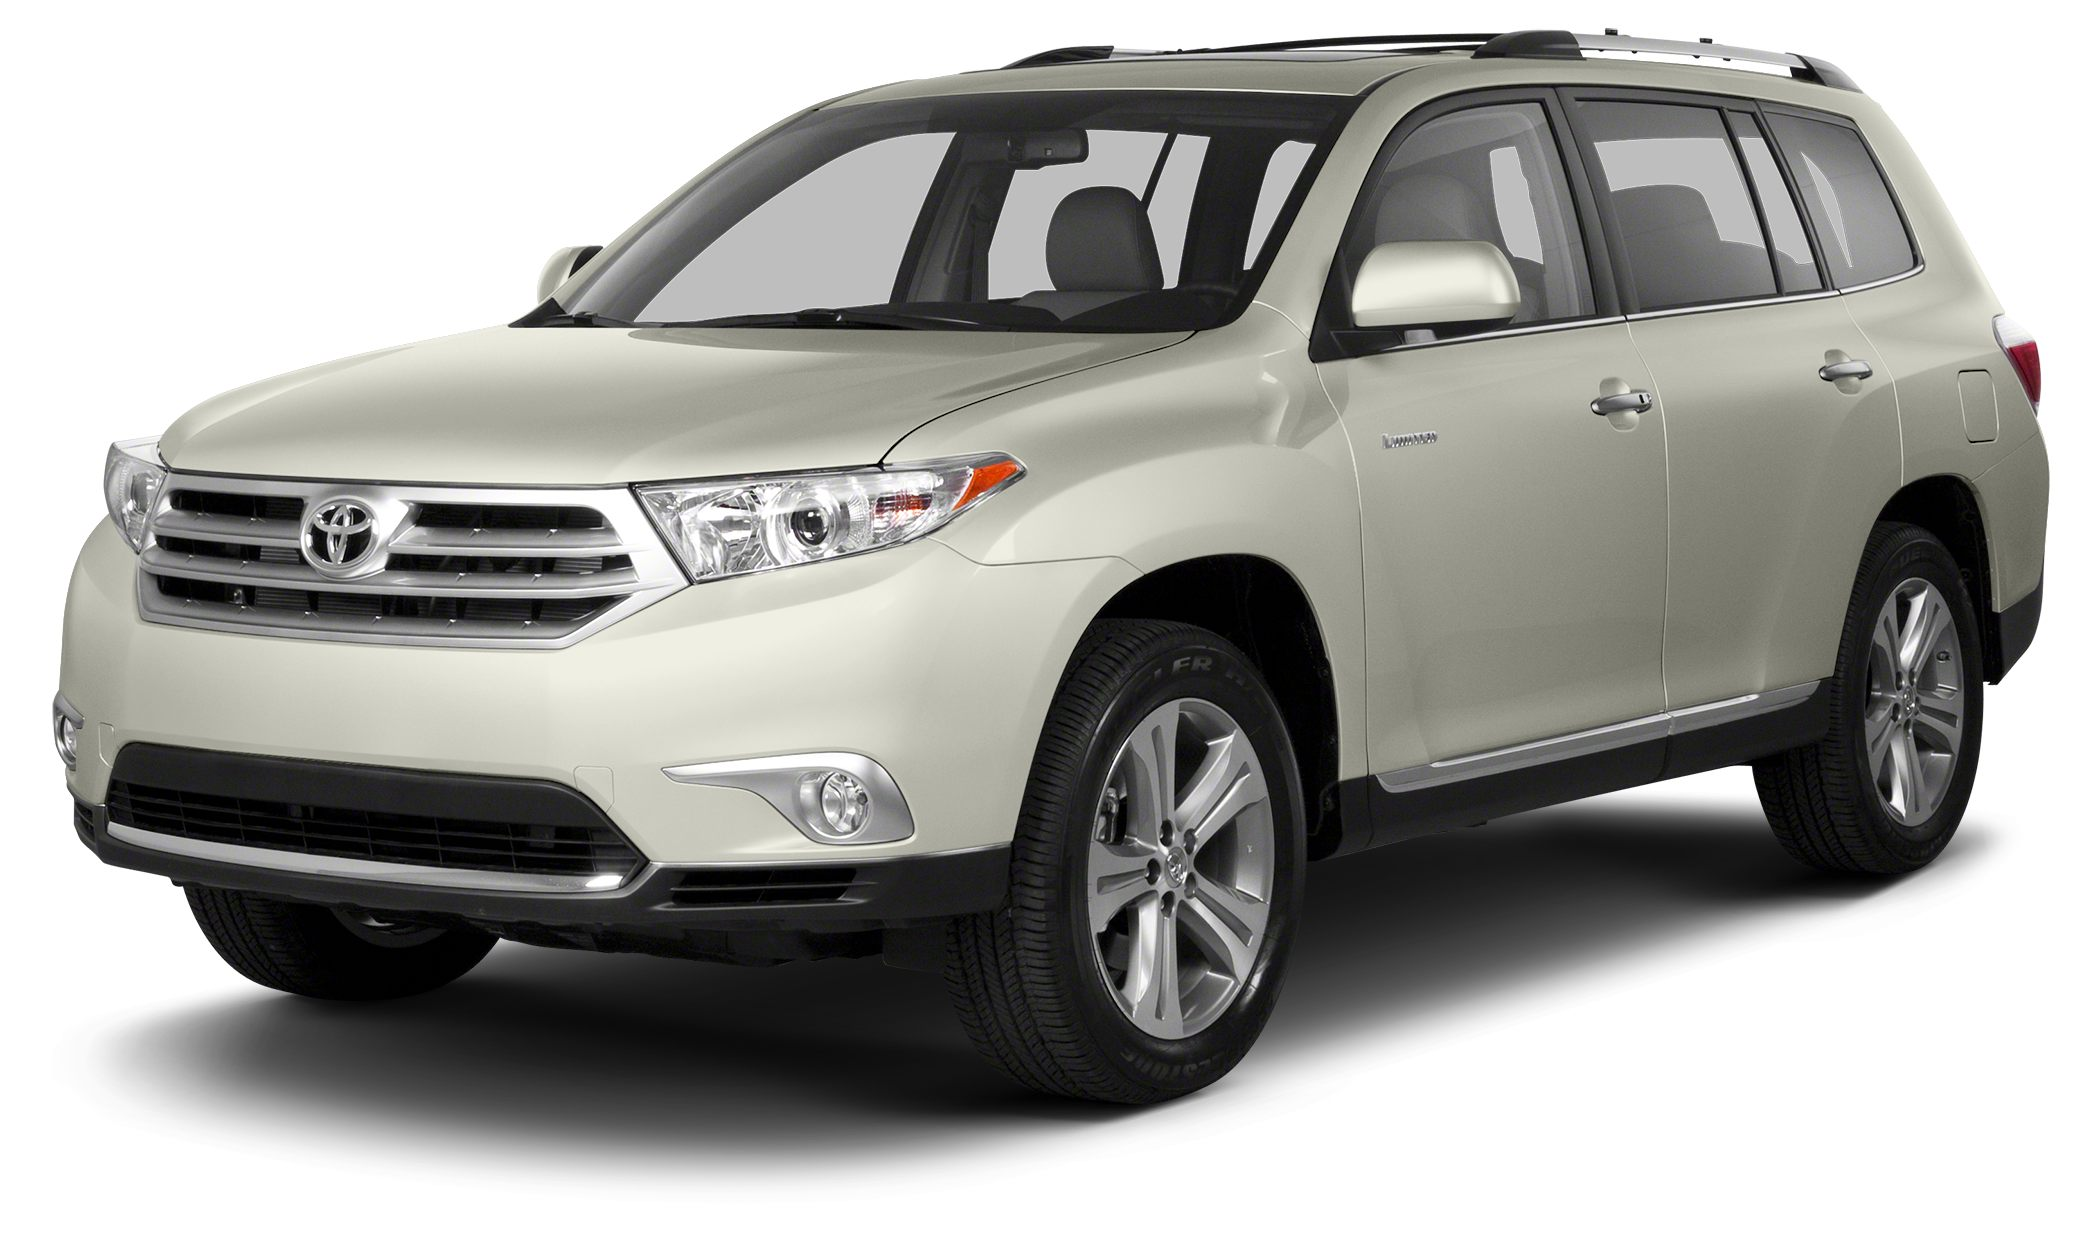 2013 Toyota Highlander Base Plus Plus trim CARFAX 1-Owner FUEL EFFICIENT 25 MPG Hwy20 MPG City